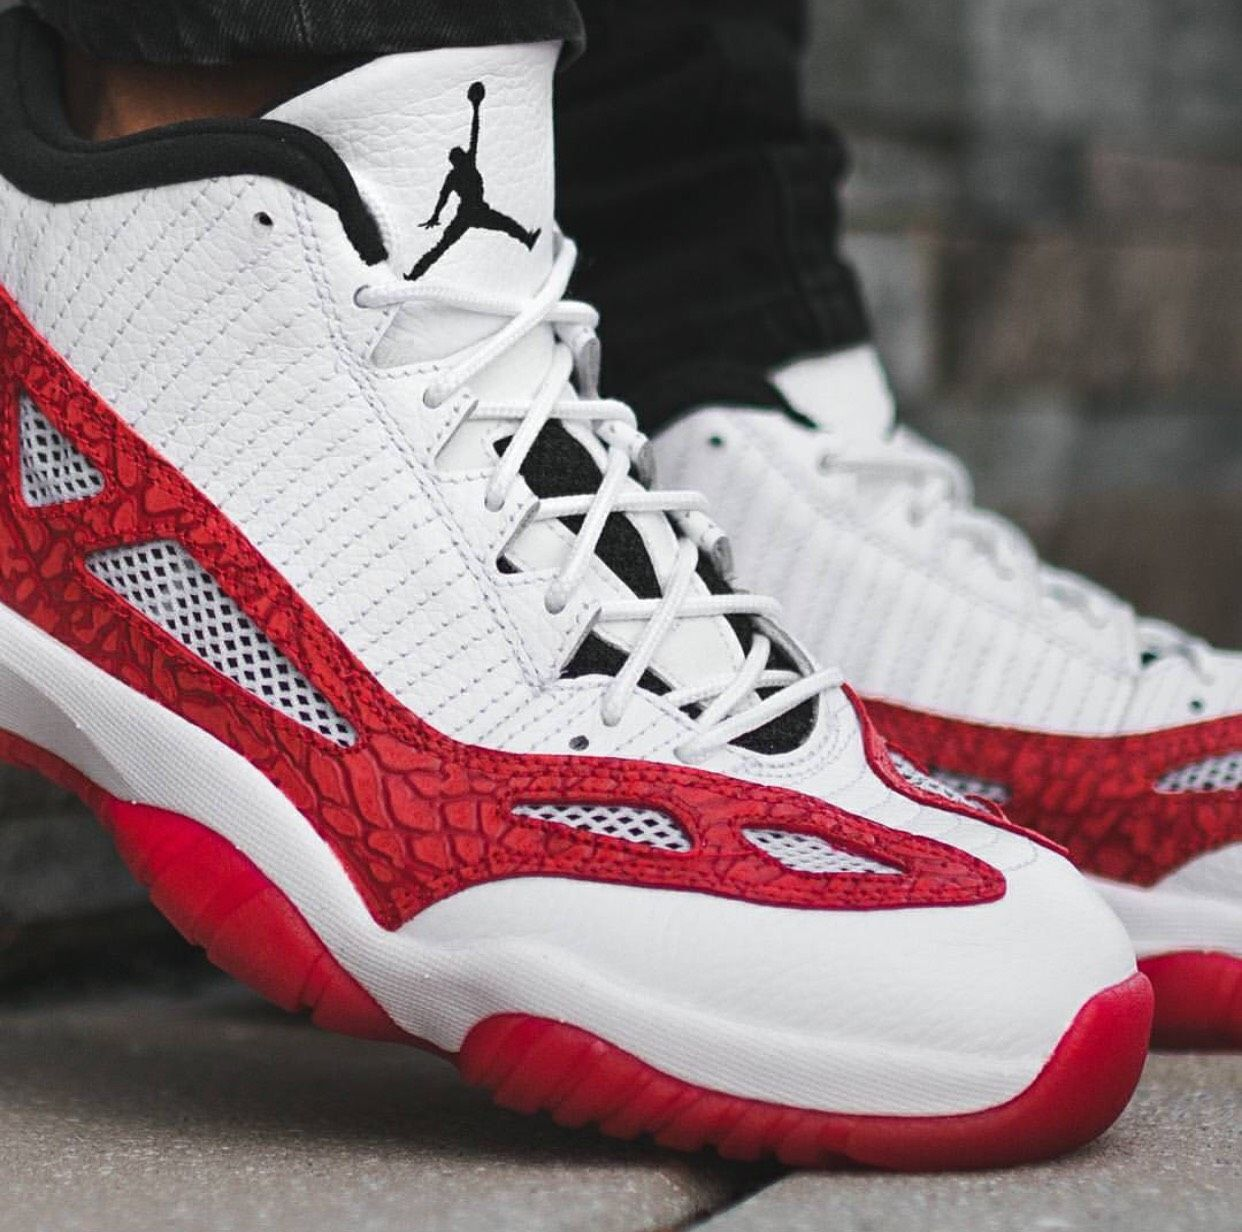 Pick Up The Air Jordan 11 Low Ie Gym Red Now With Images Air